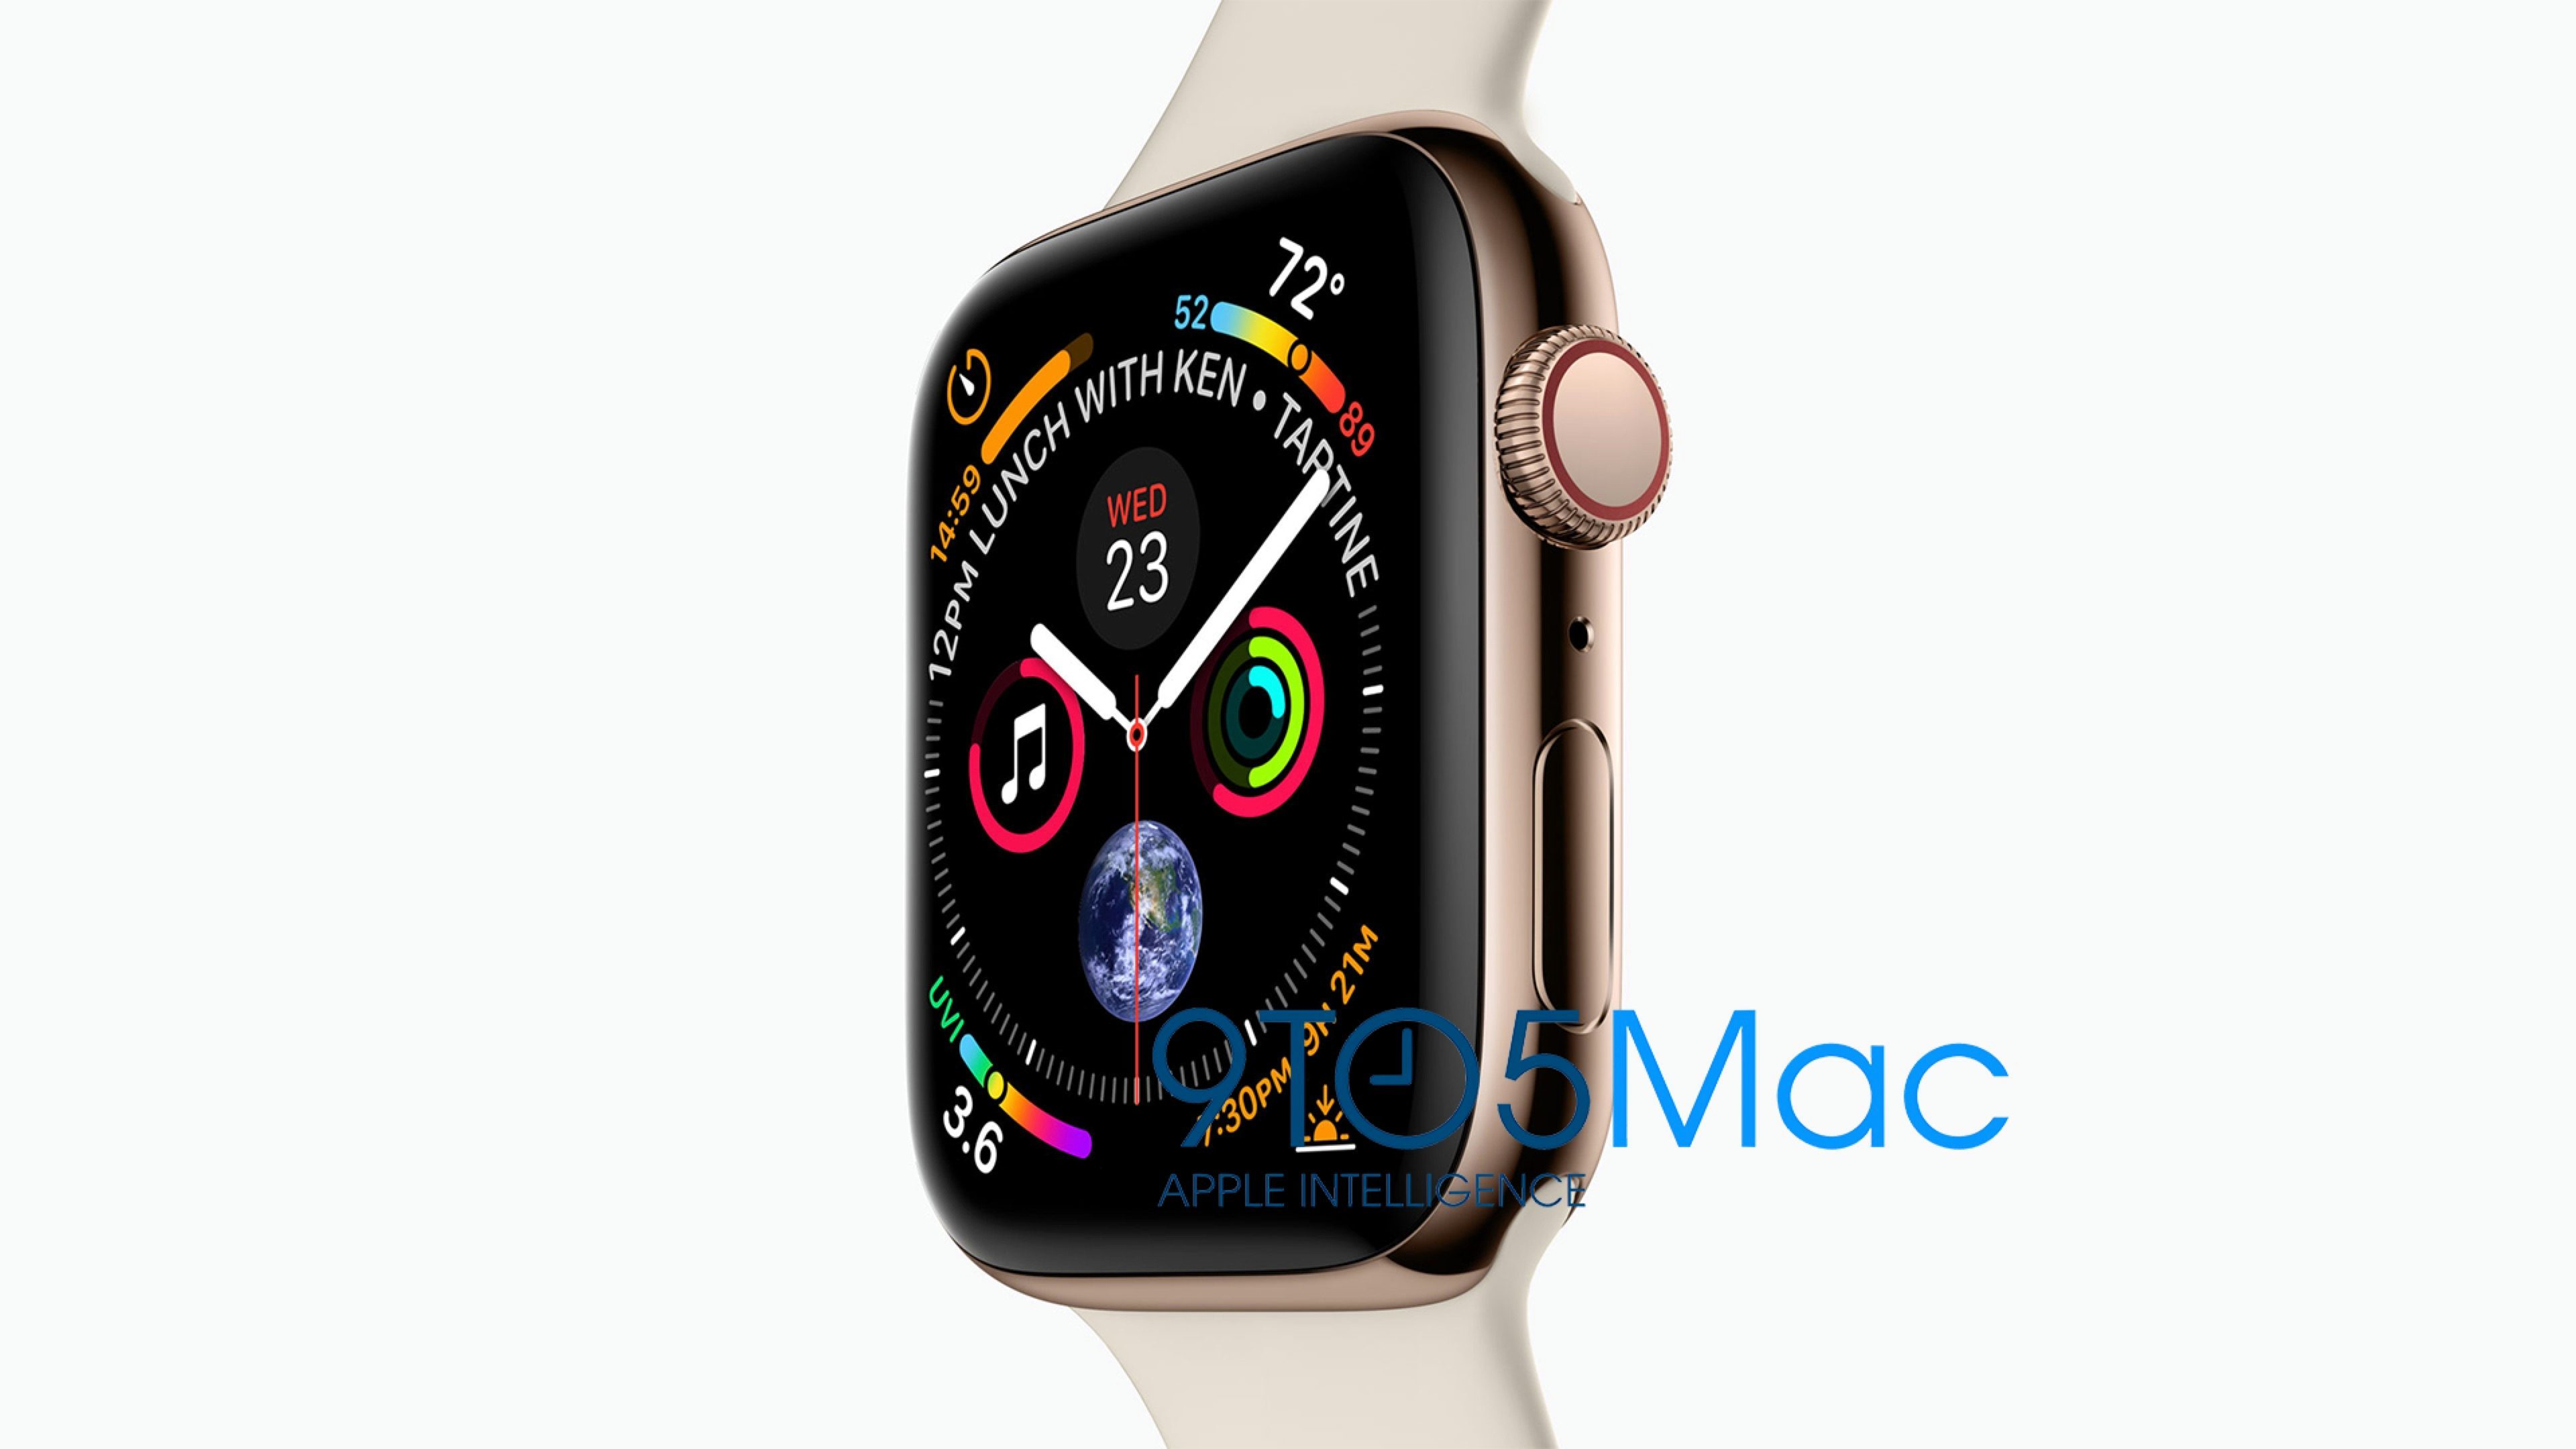 apple_watch_series_4_9to5mac.jpg#asset:6112